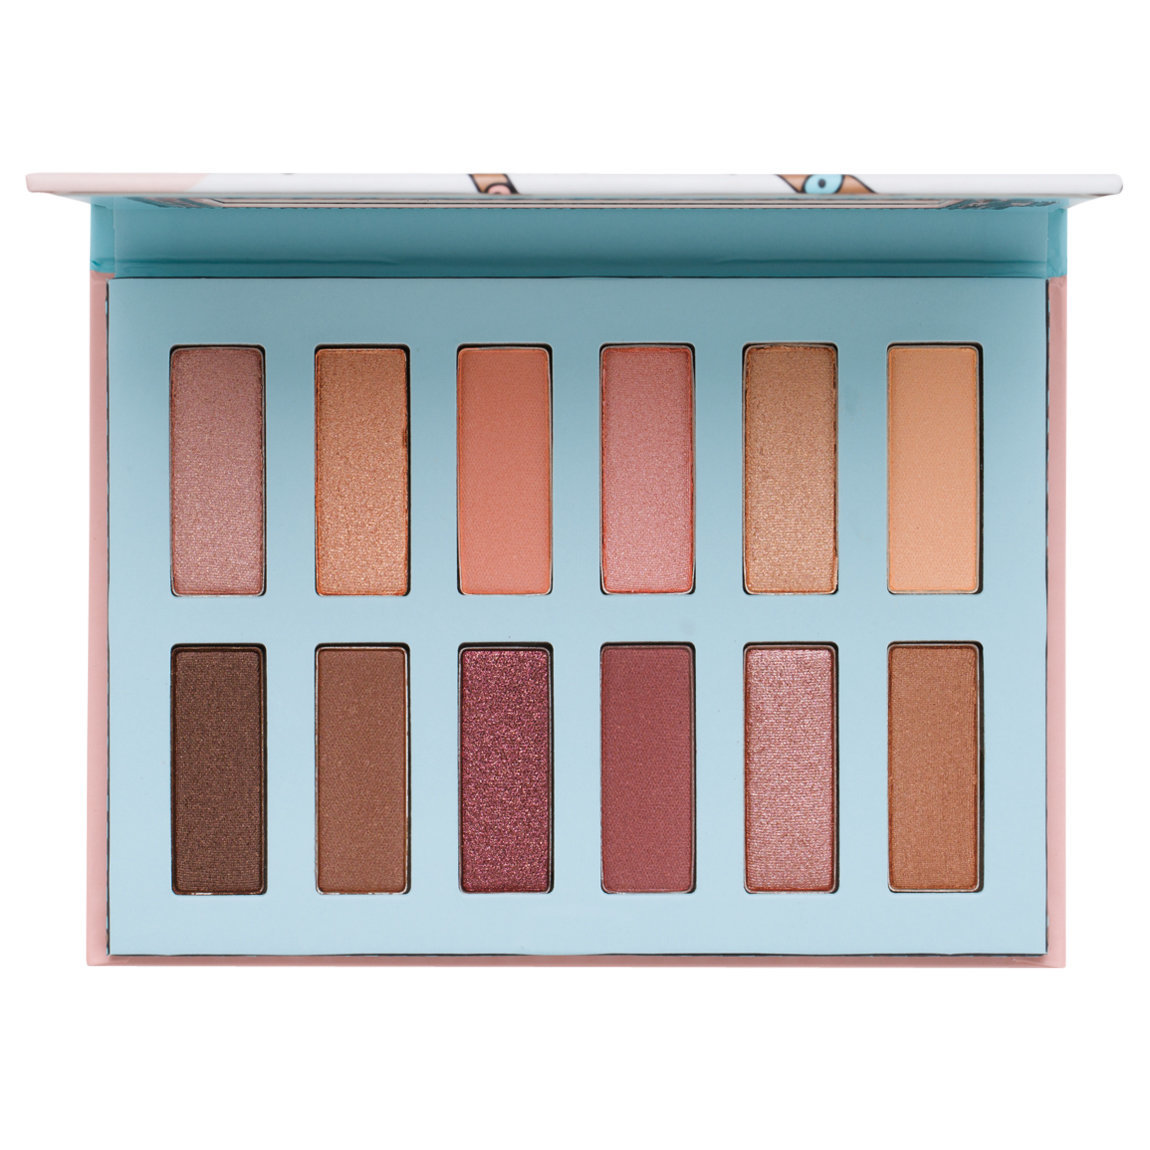 Benefit Cosmetics Vanity Flare Eyeshadow Palette product smear.